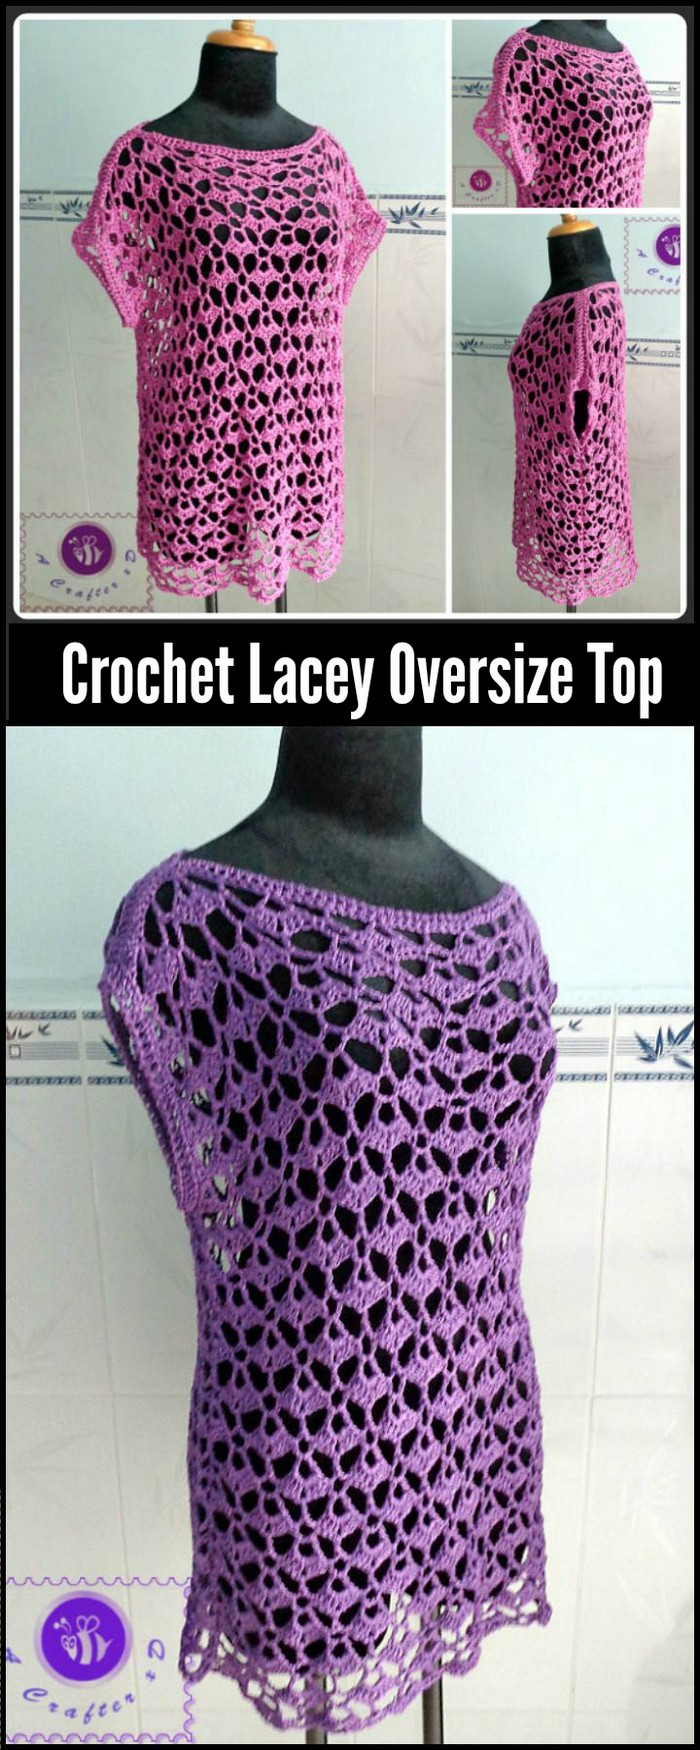 Crochet Lacey Oversize Top